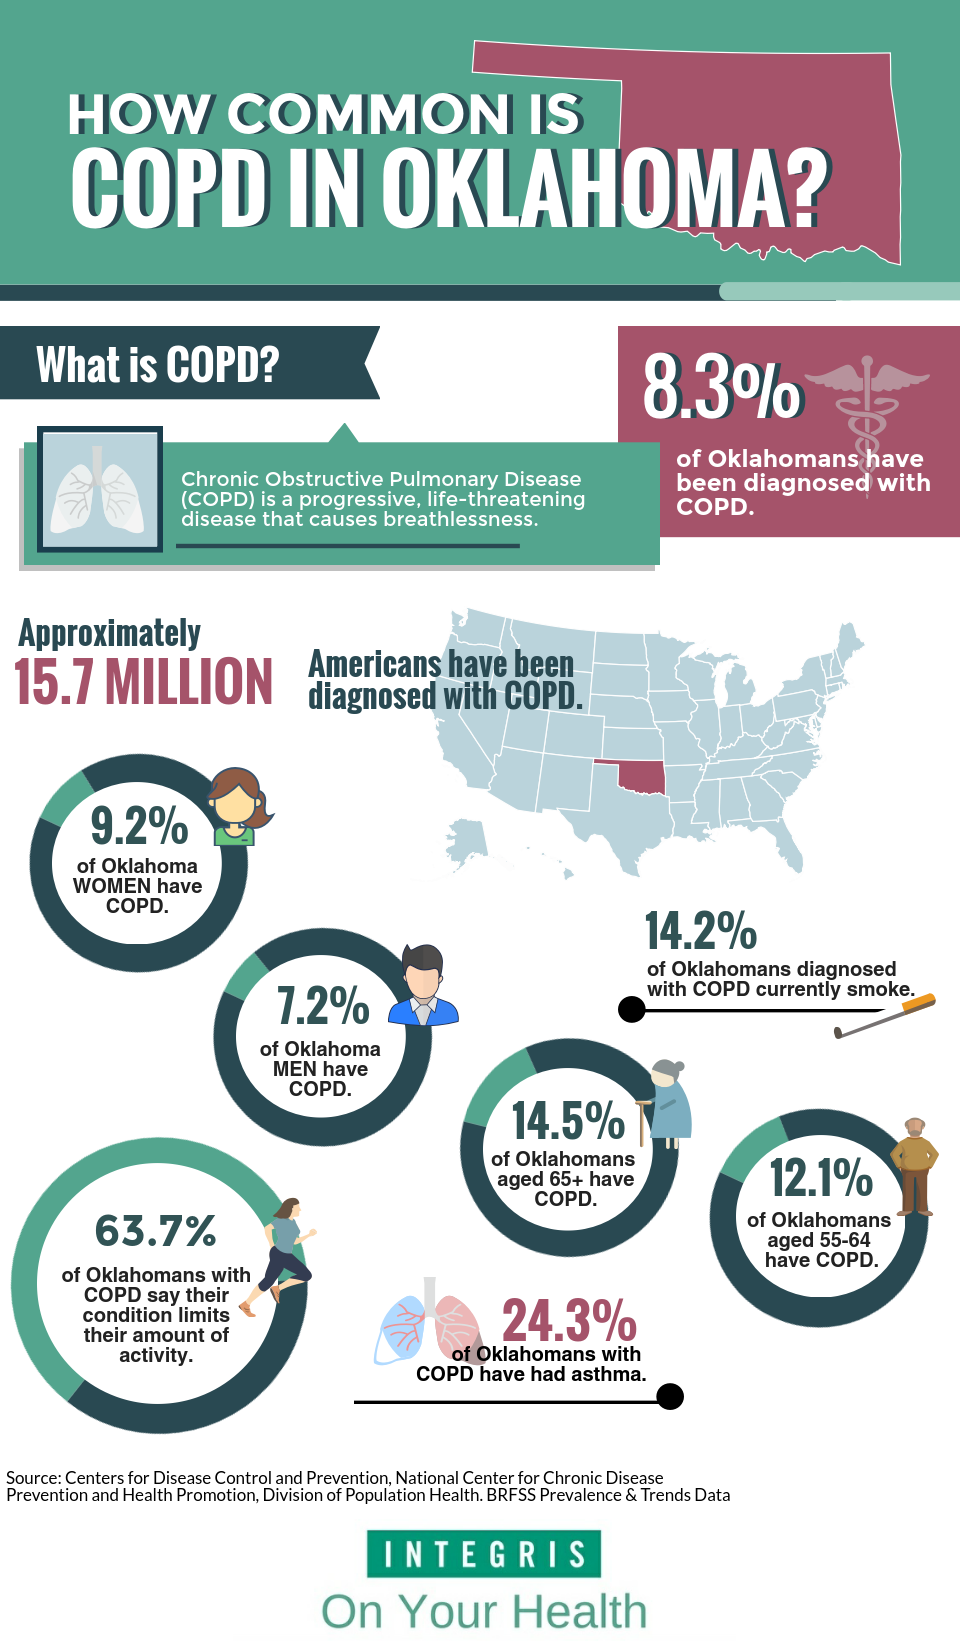 COPD information